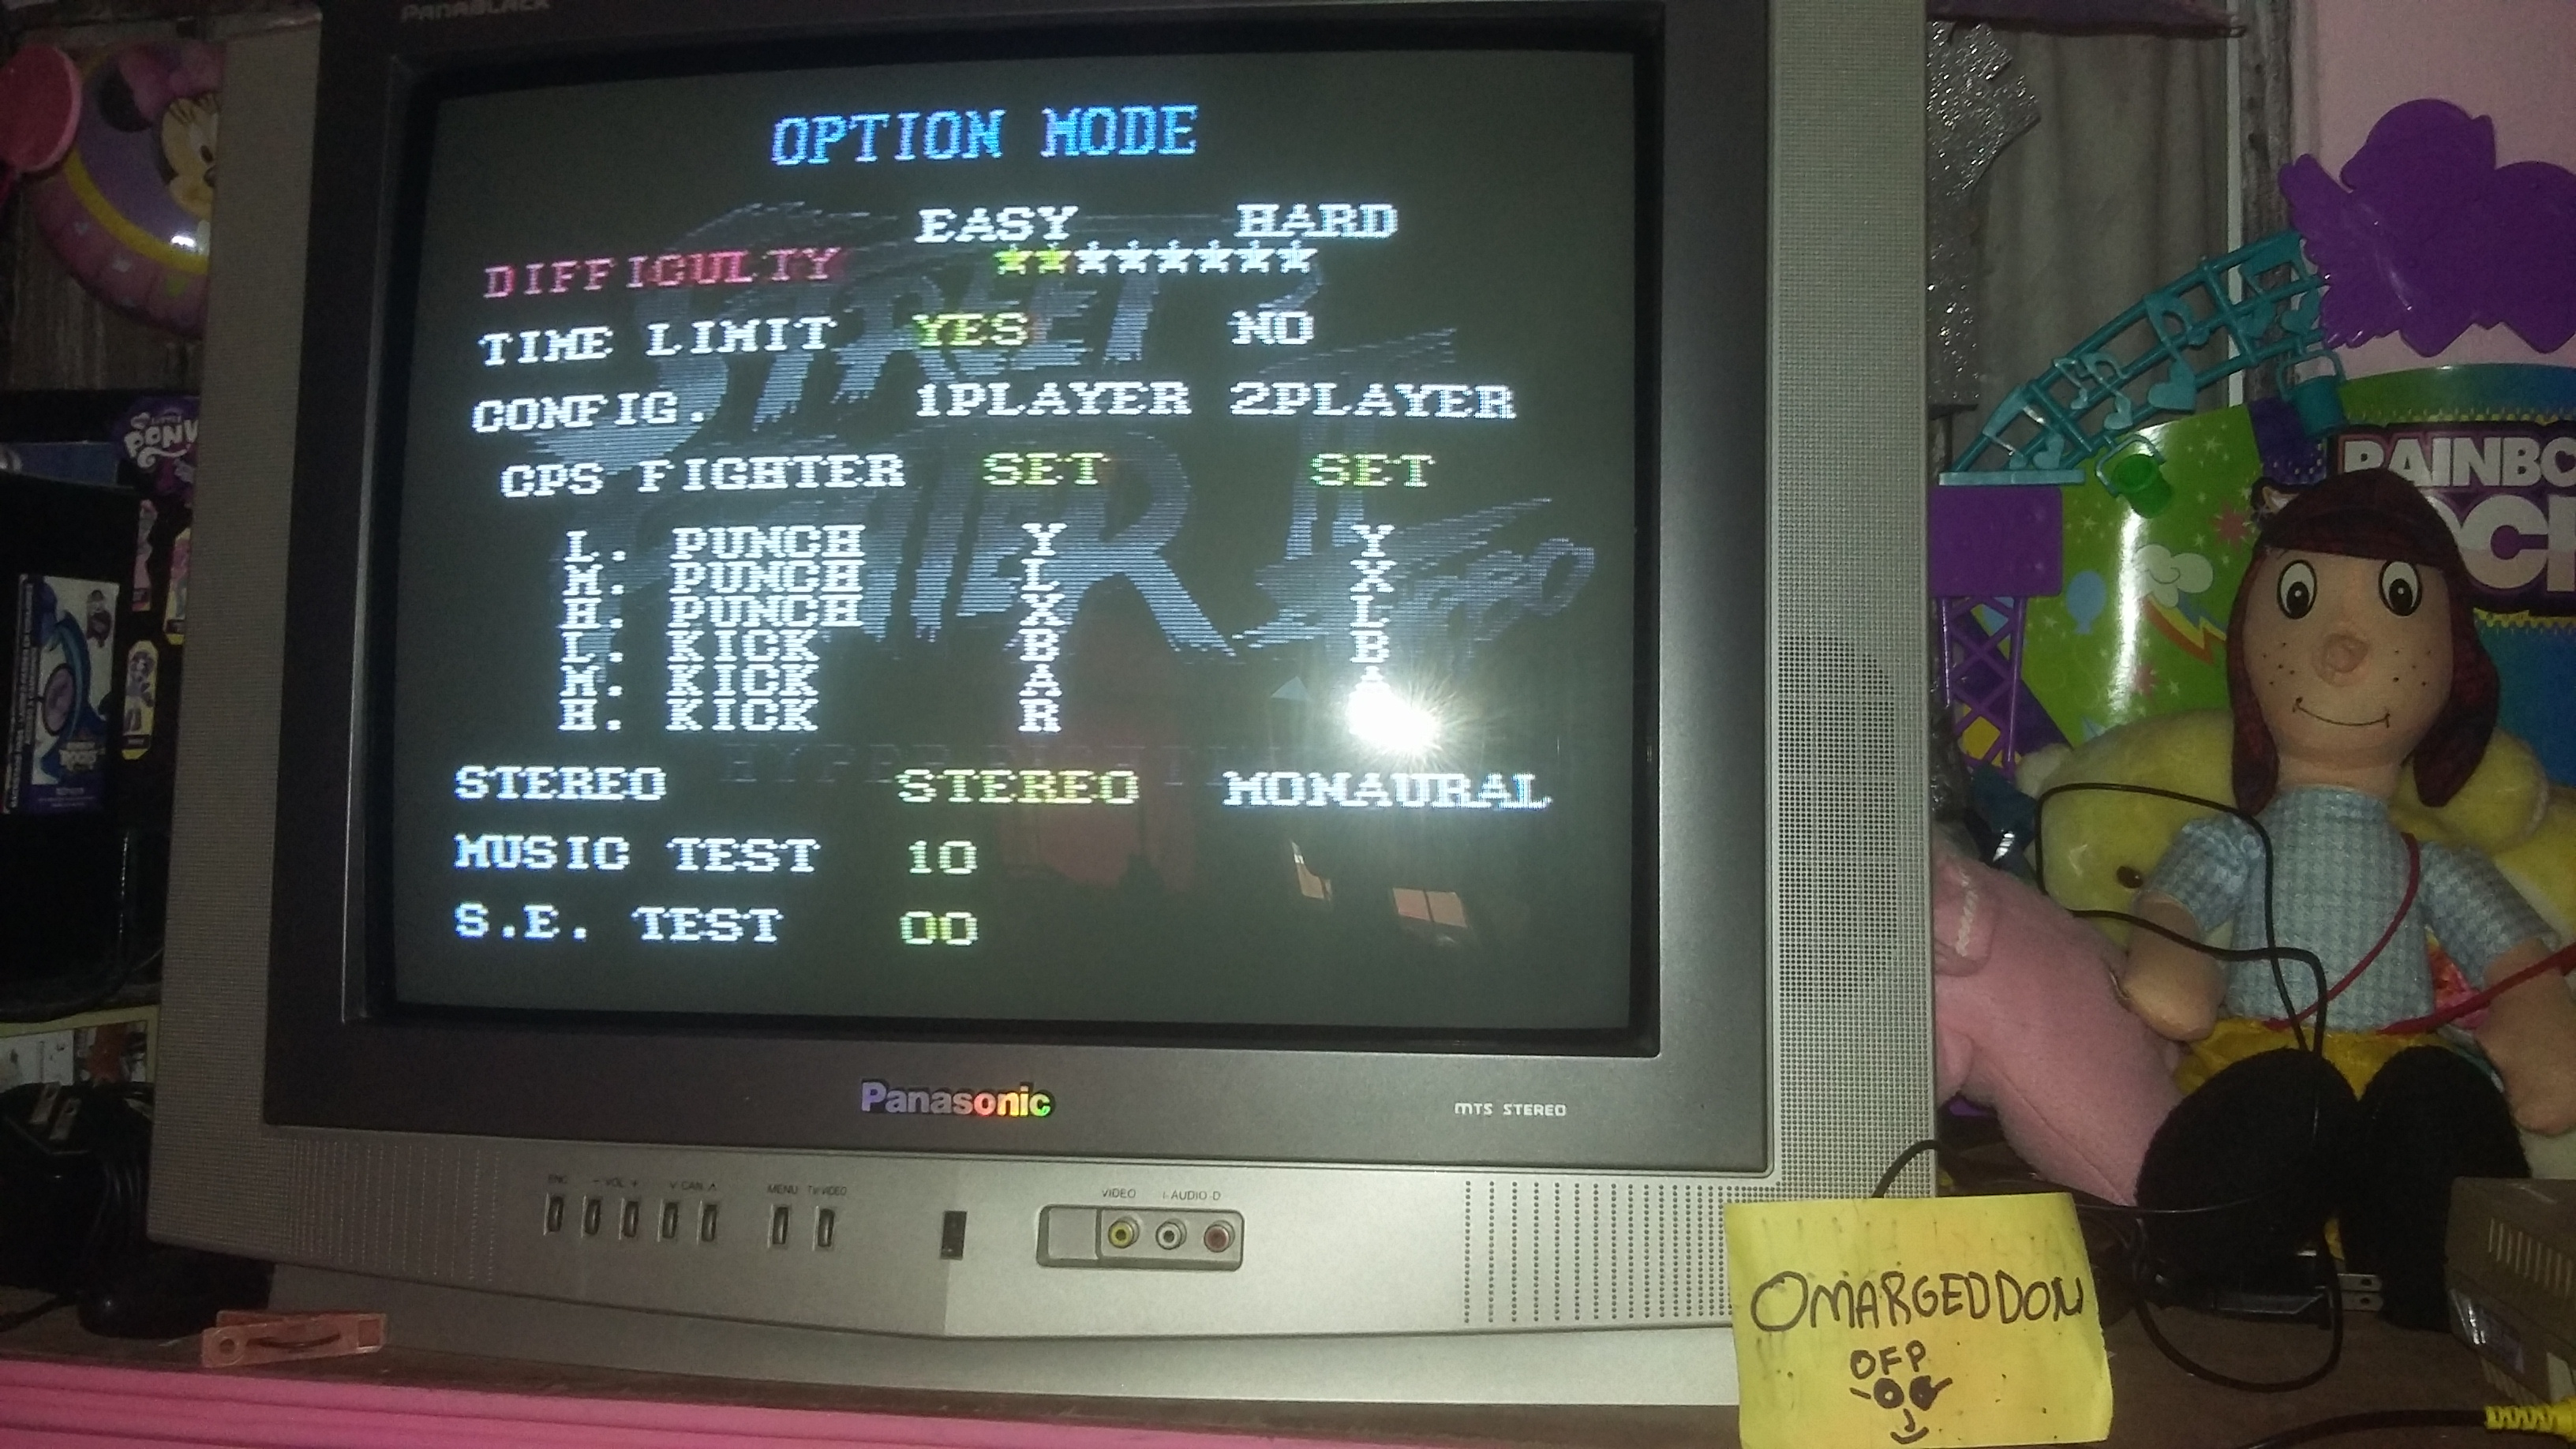 Street Fighter II Turbo: Hyper Fighting [Turbo / Difficulty 2] 853,000 points